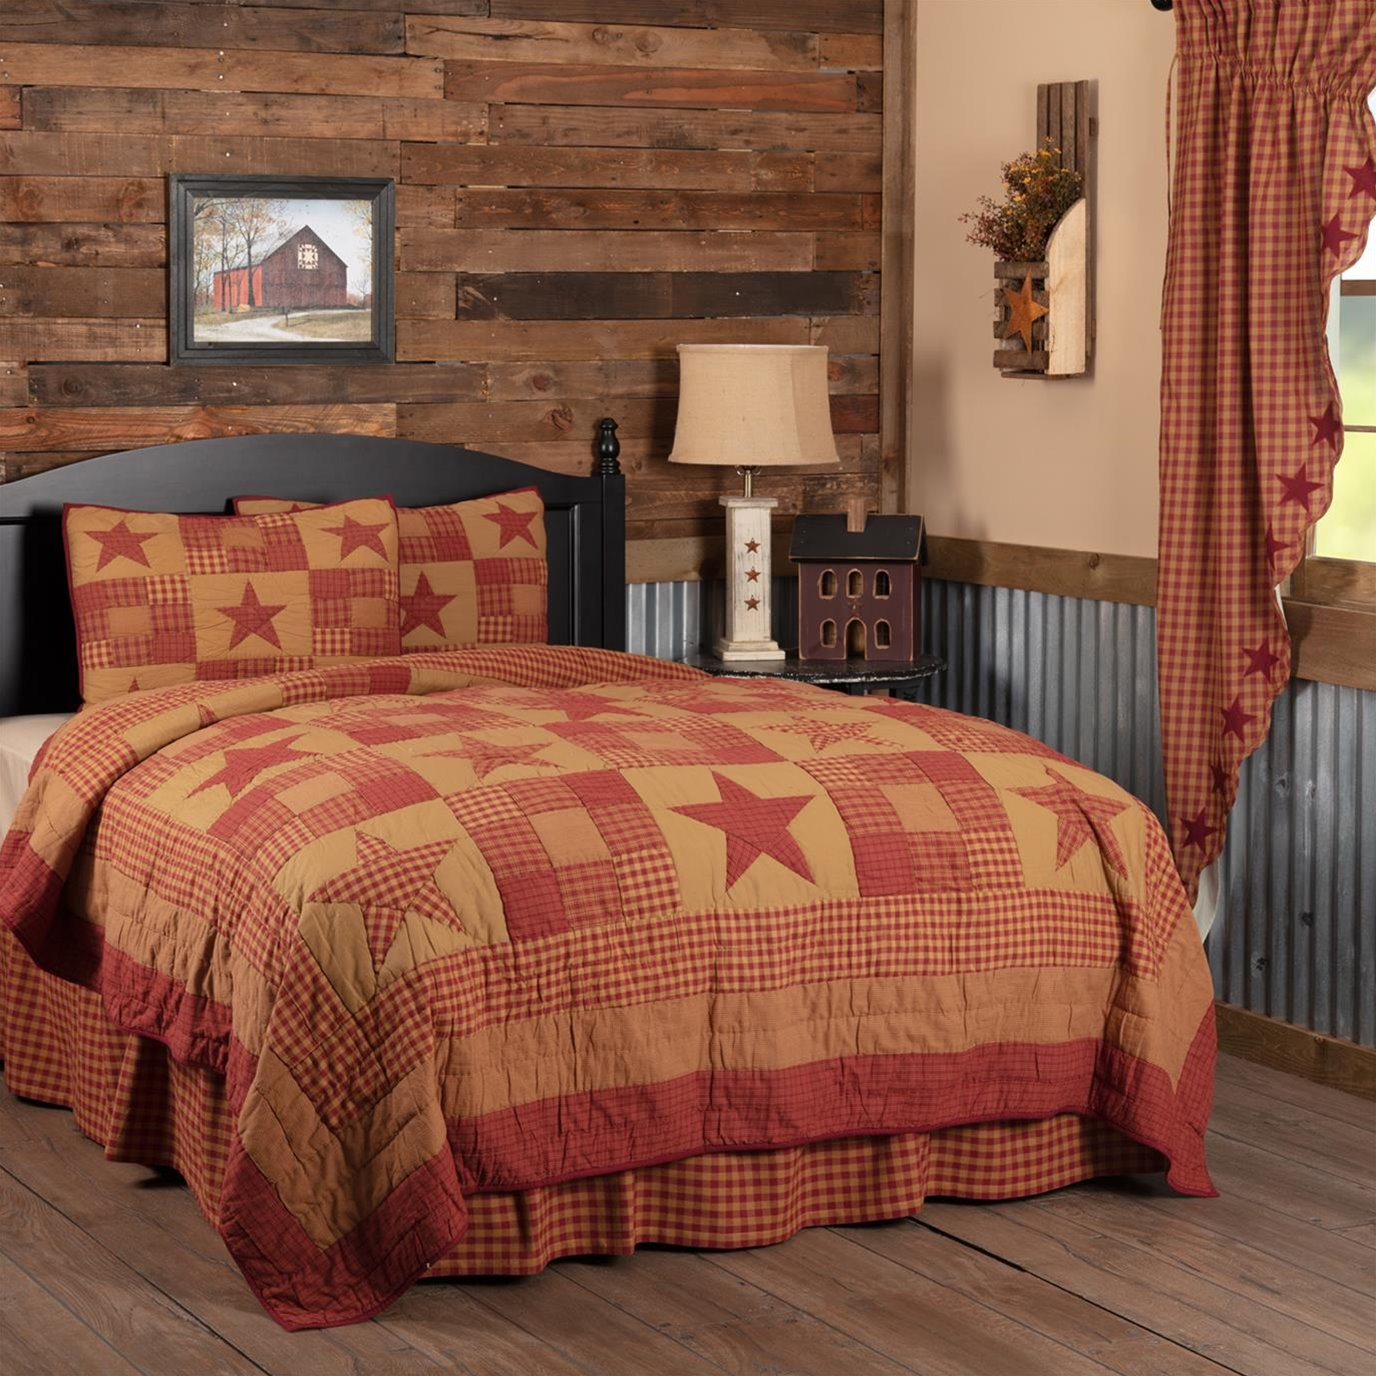 Ninepatch Star California King Quilt Set; 1-Quilt 130Wx115L w/2 Shams 21x37